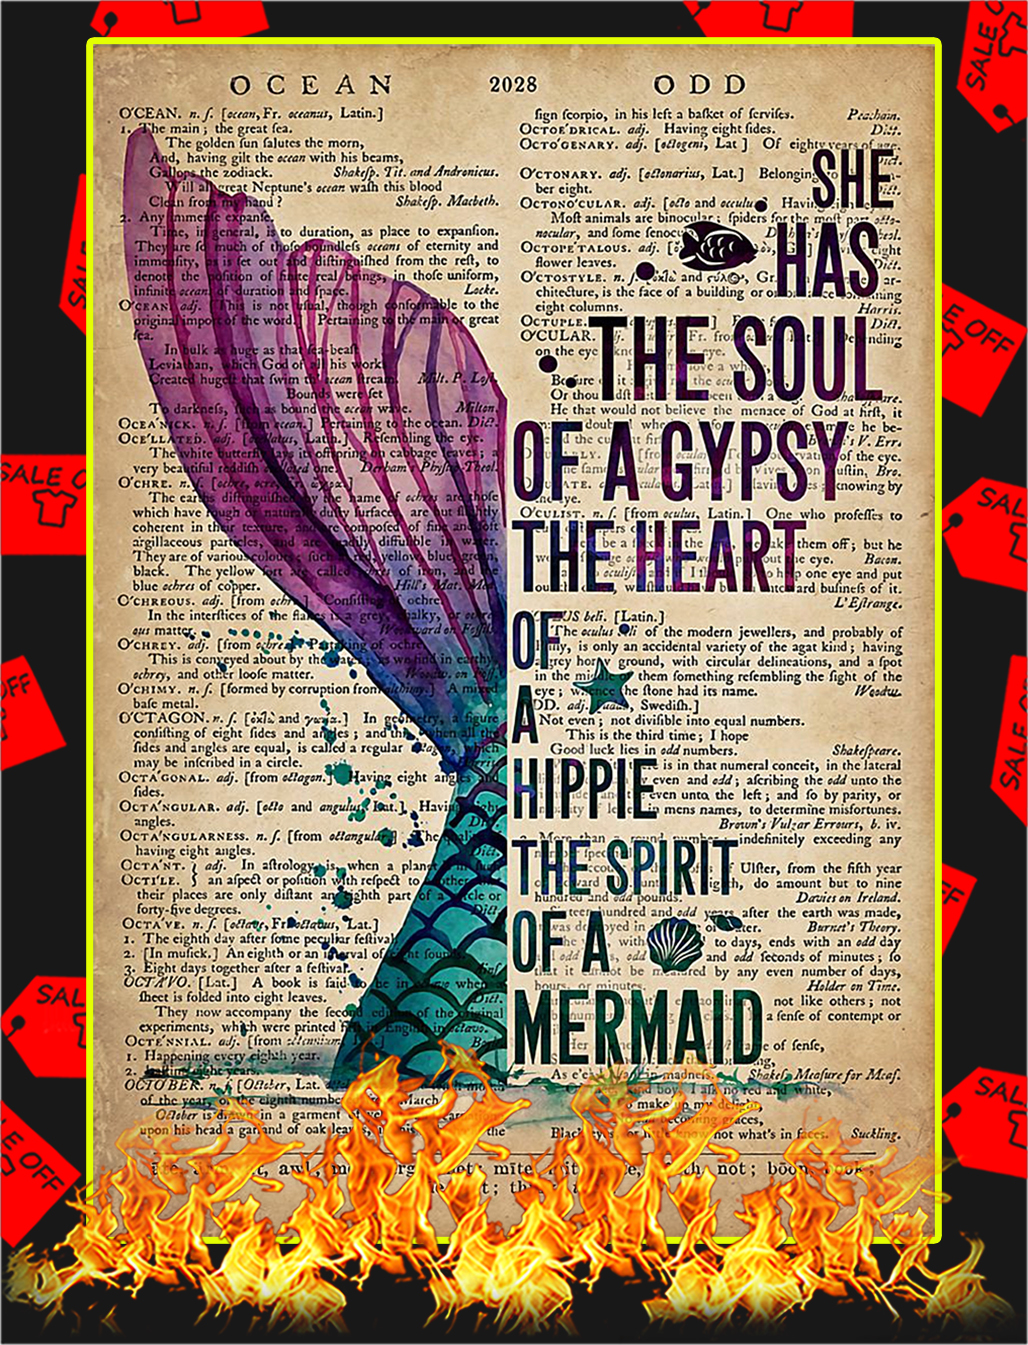 Mermaid She has the soul of a gypsy poster - A2